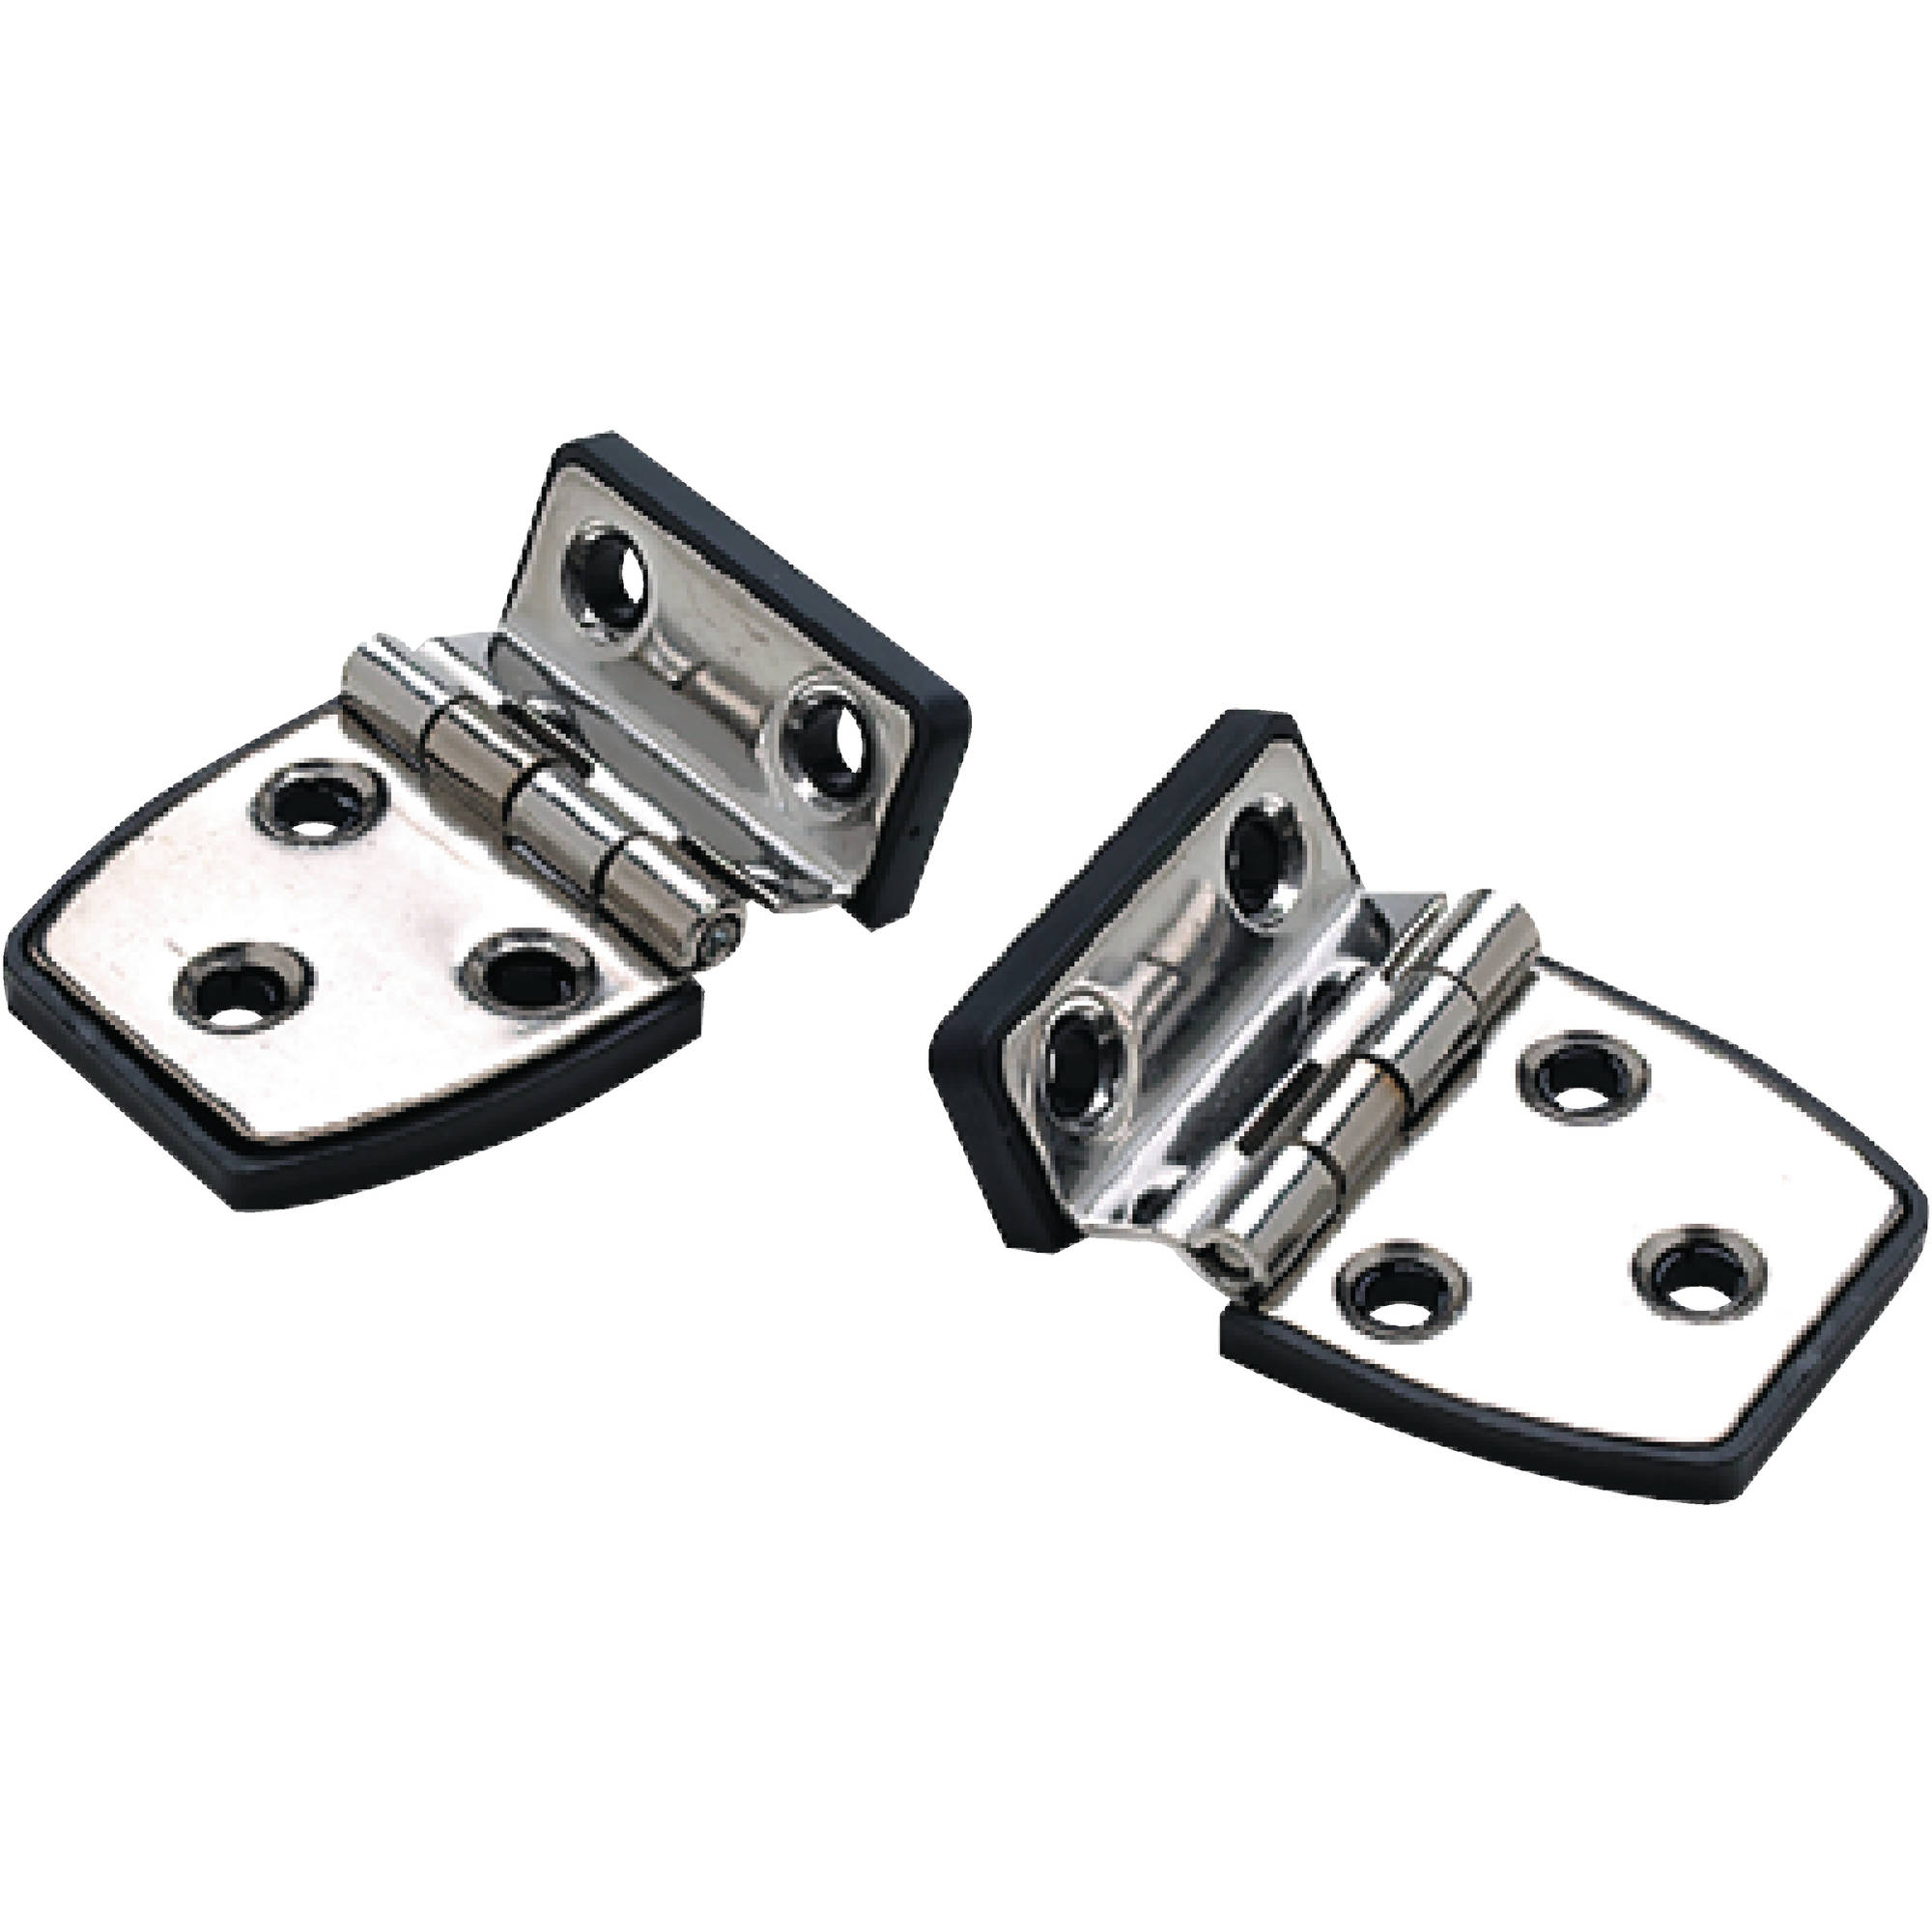 """SeaChoice 50-34471 (2) 2-1/4"""" x 1-1/2"""" Polished Stainless Steel Offset Short Side Hinges with Black Nylon Base Plate"""